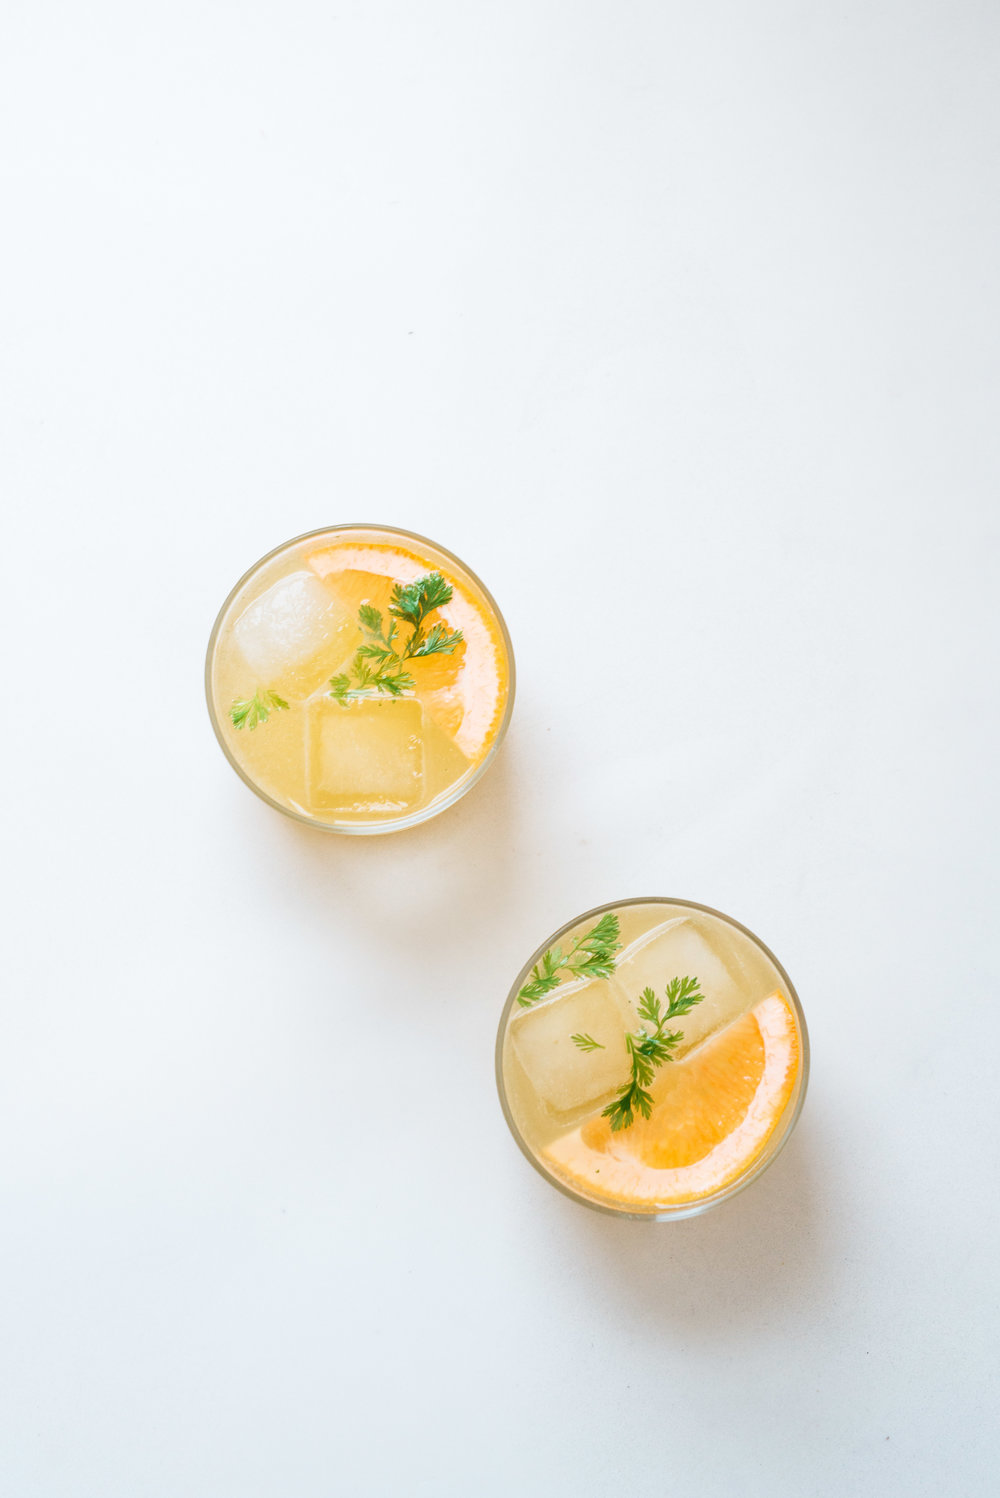 Cilantro-Grapefruit Mezcal Spritz | Dolly and Oatmeal